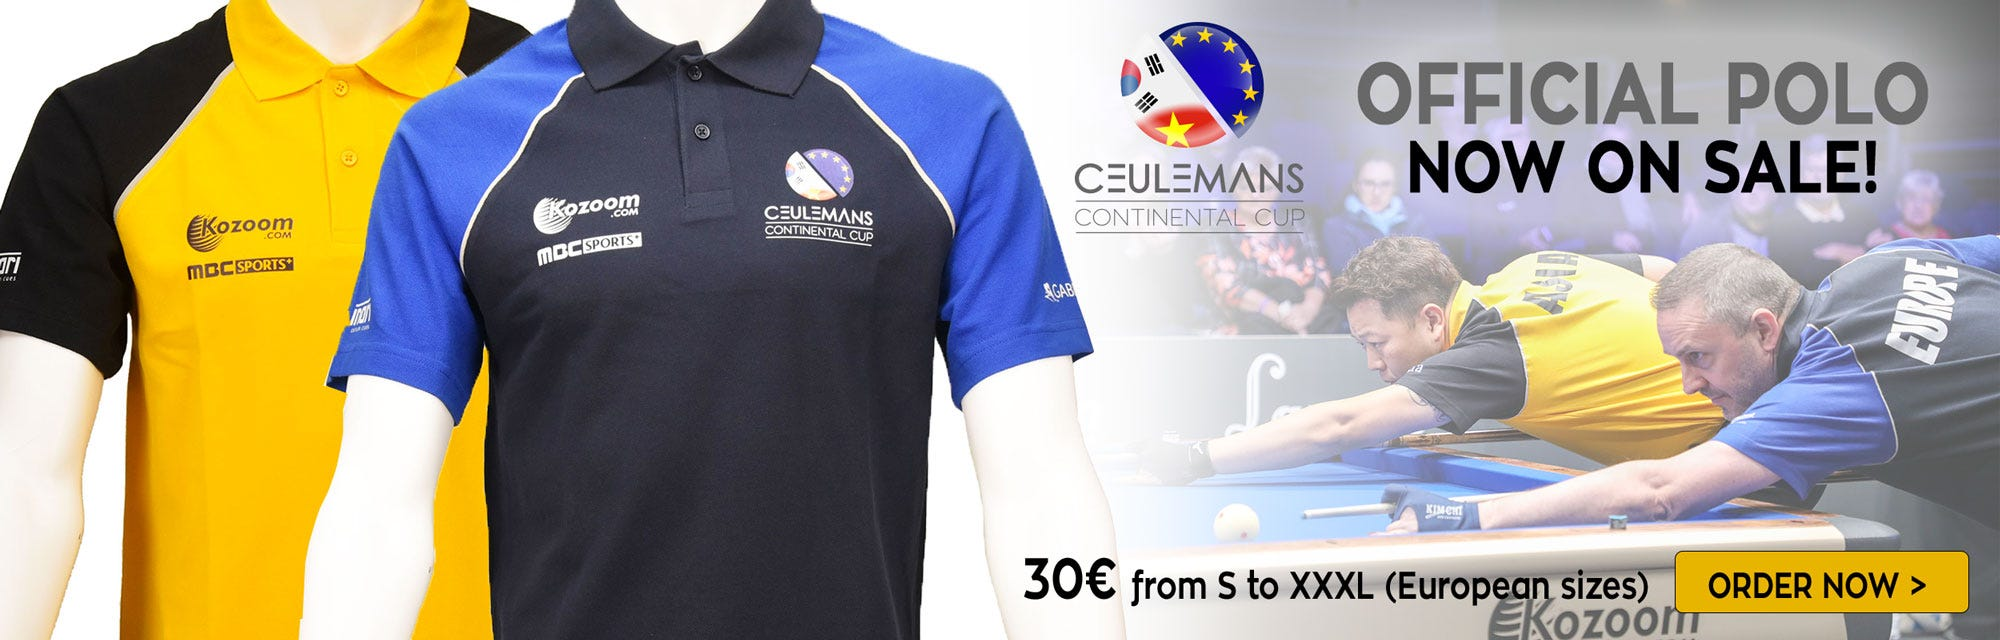 Official Polo Ceulemans Cup 2018